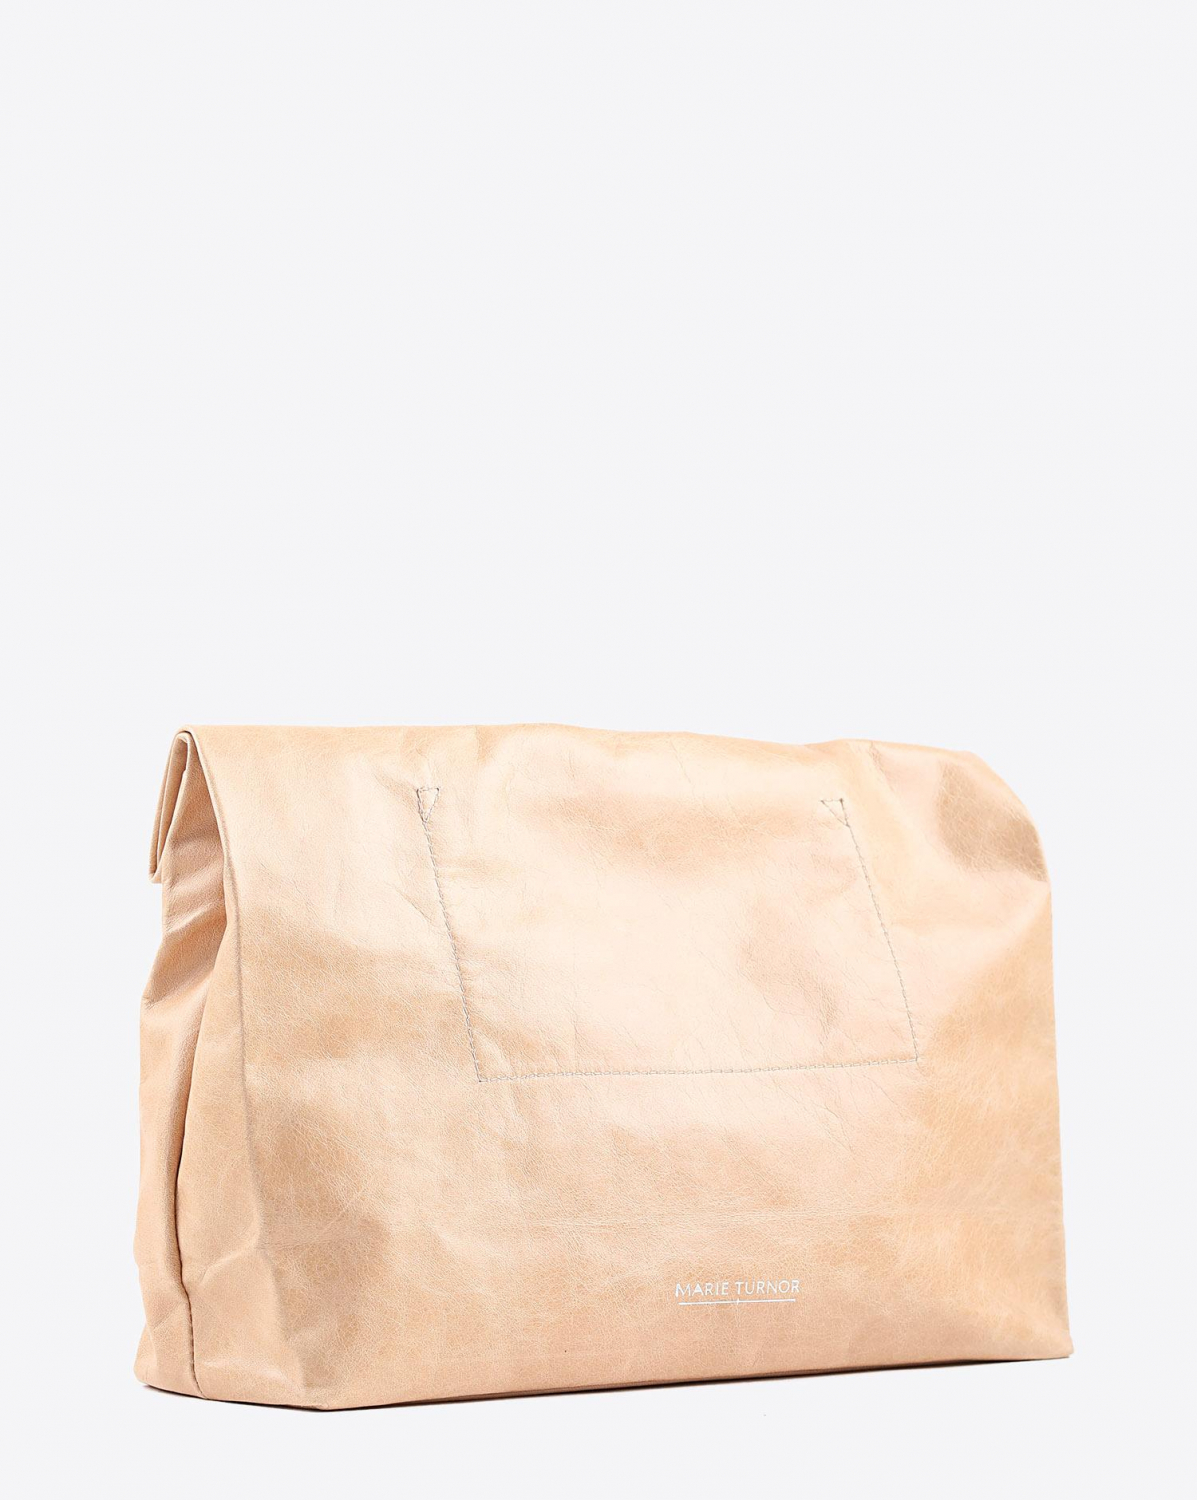 Marie Turnor Lunch Clutch - Tan